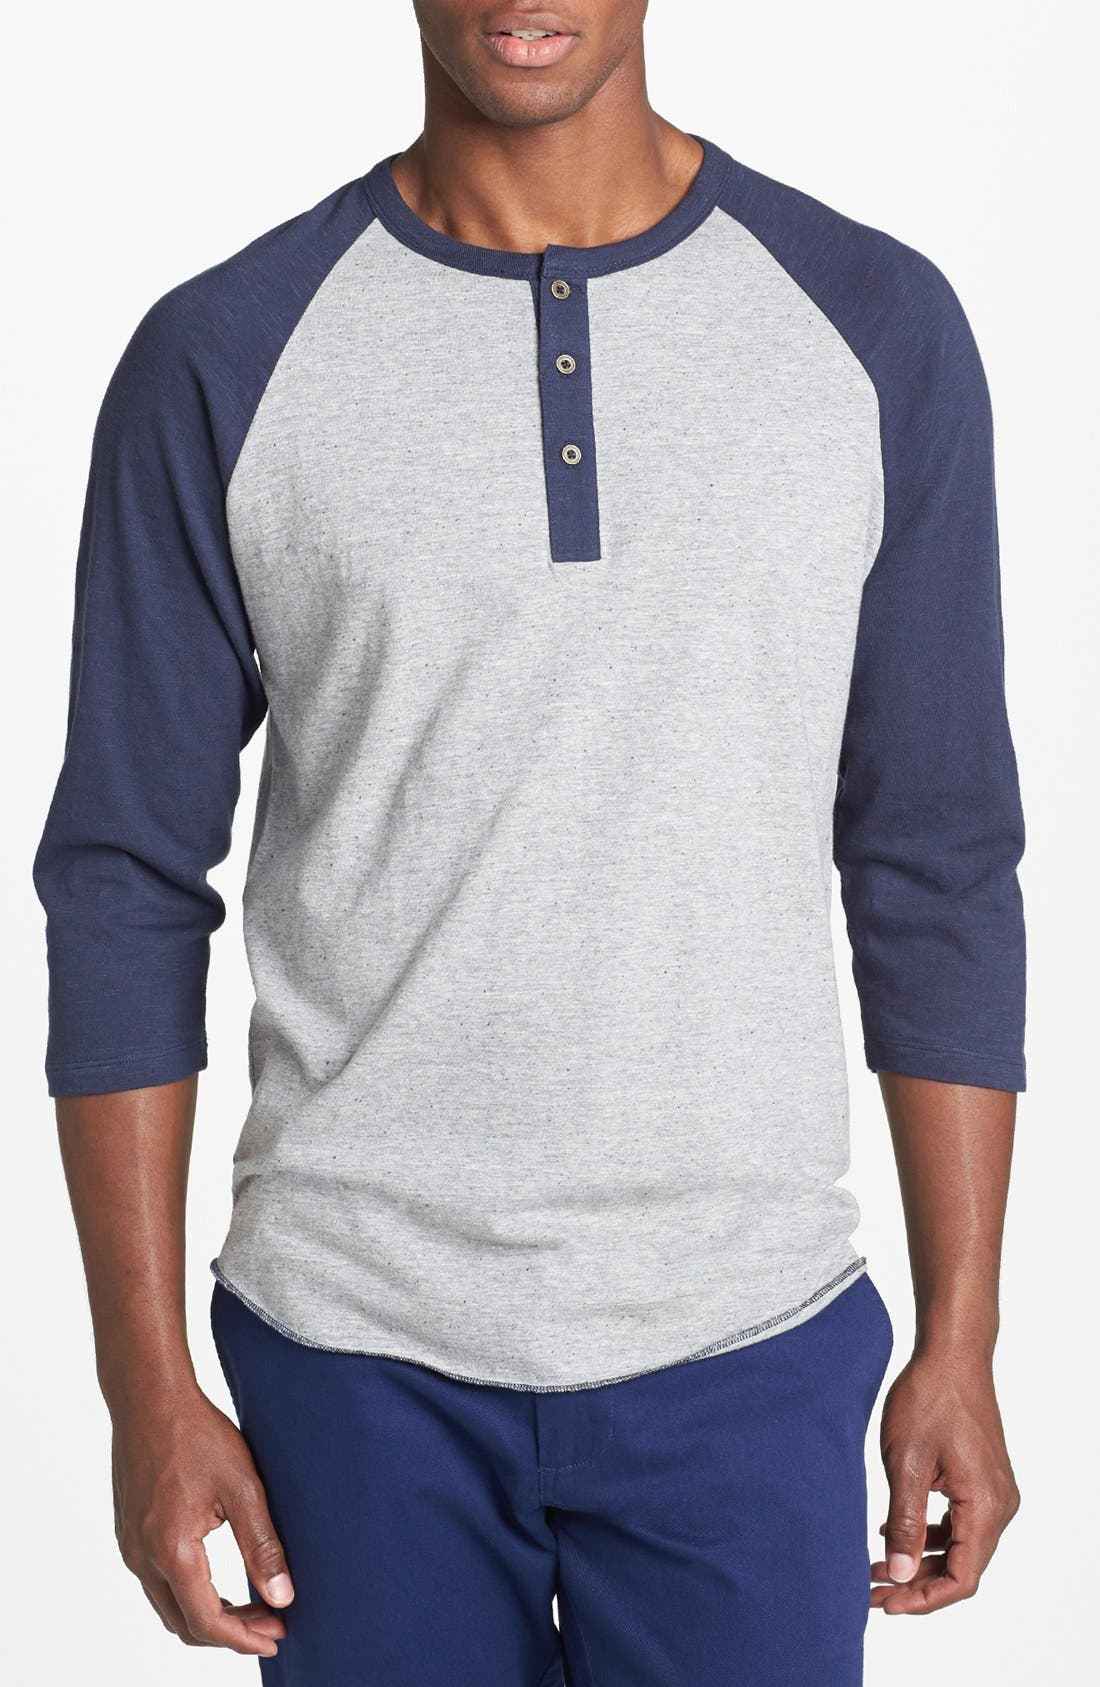 Shop the Latest Collection of Henley T-Shirts for Men Online at dirtyinstalzonevx6.ga FREE SHIPPING AVAILABLE!